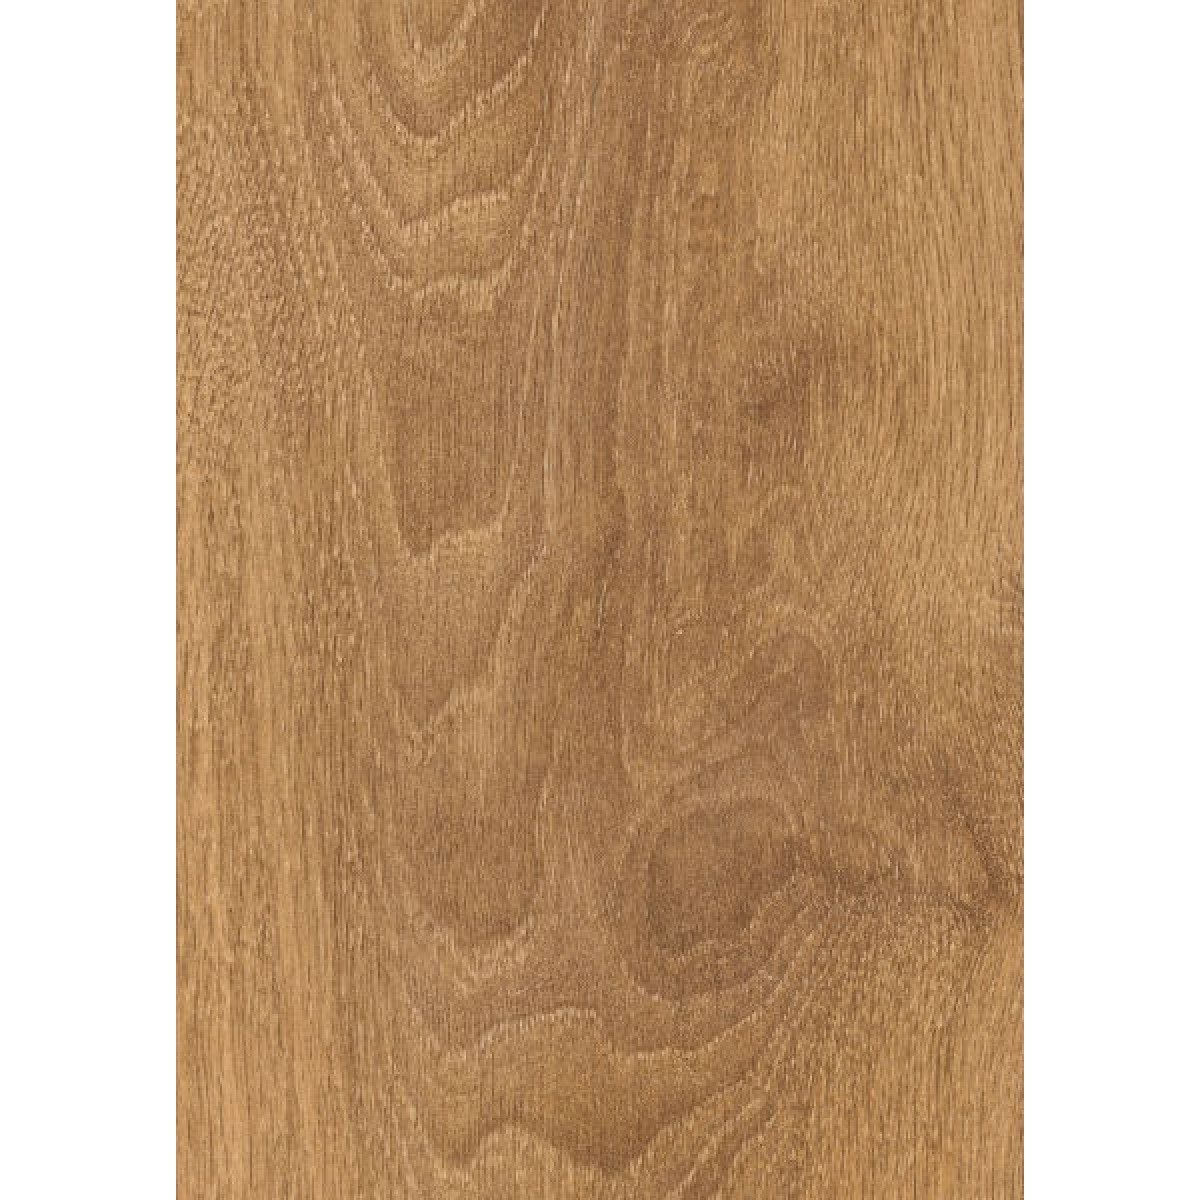 Prestige autumn oak 4v laminate flooring per pack for Laminate flooring retailers